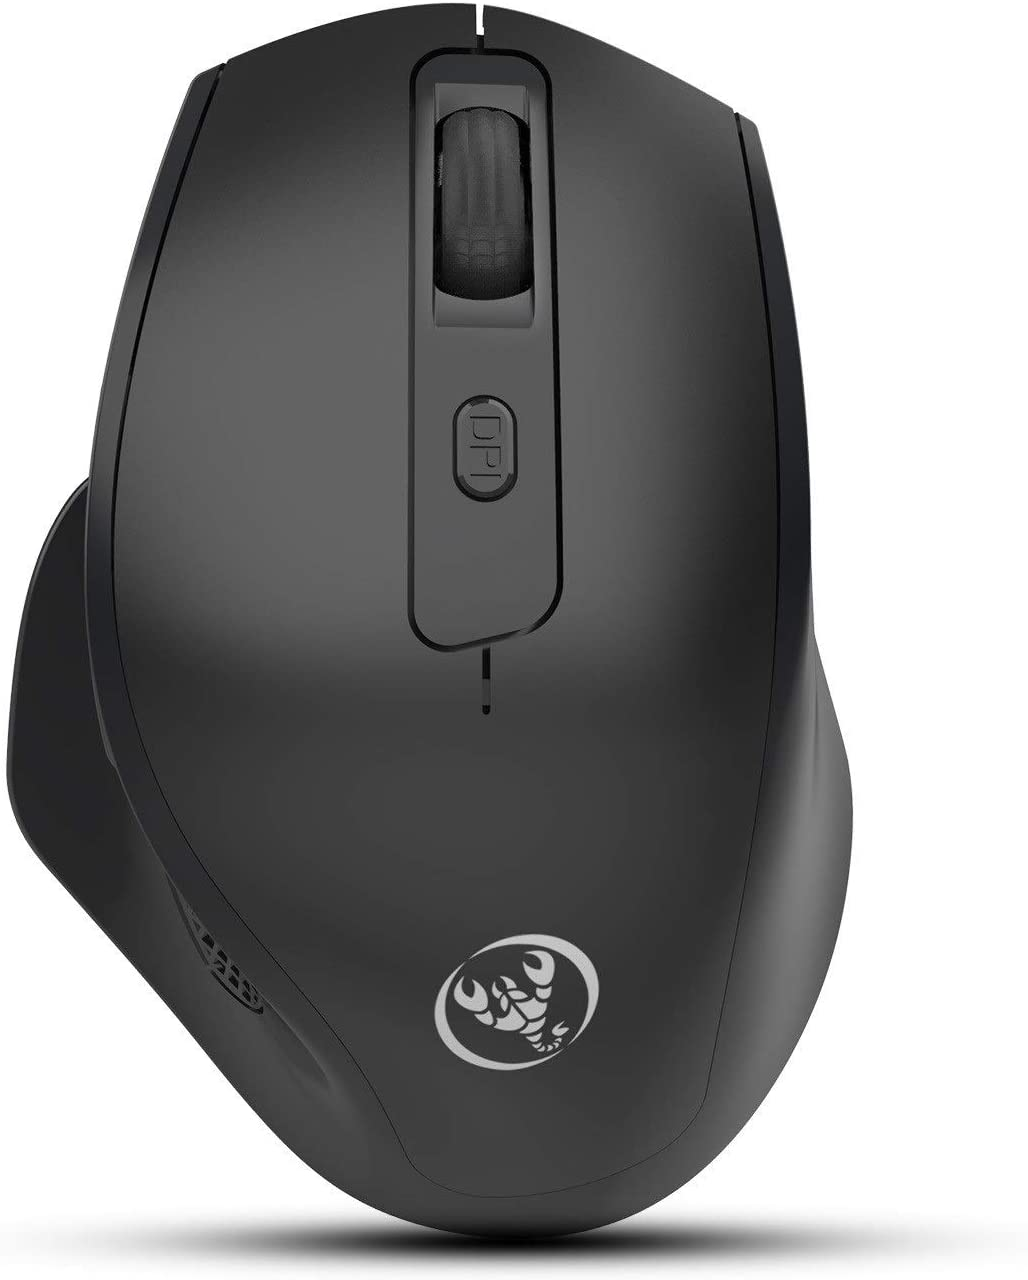 Vertical Mouse, Wired Ergonomic Mouse with RGB Lighting, 3 Adjustable DPI (800-1600-2400 DPI), 6 Buttons, Removable Wrist Rest, Optical Mouse for Laptop PC Computer